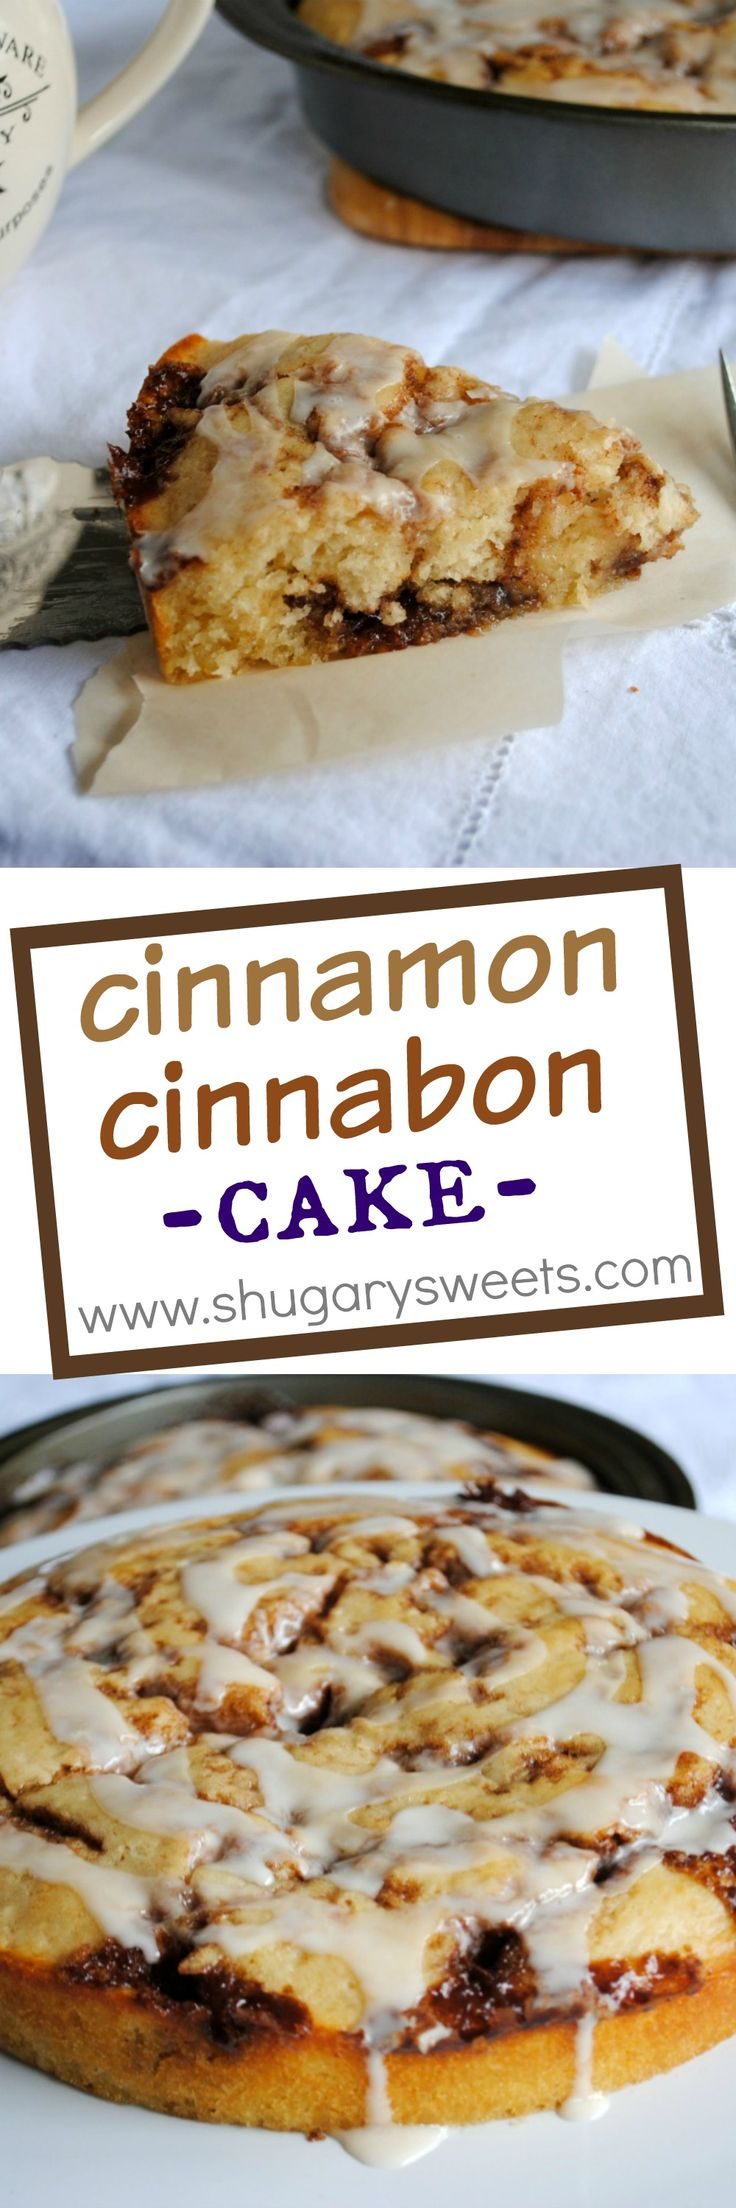 Cinnabon cinnamon roll cake: delicious breakfast recipe. Easy to make and yields TWO cakes. Freezes well too!